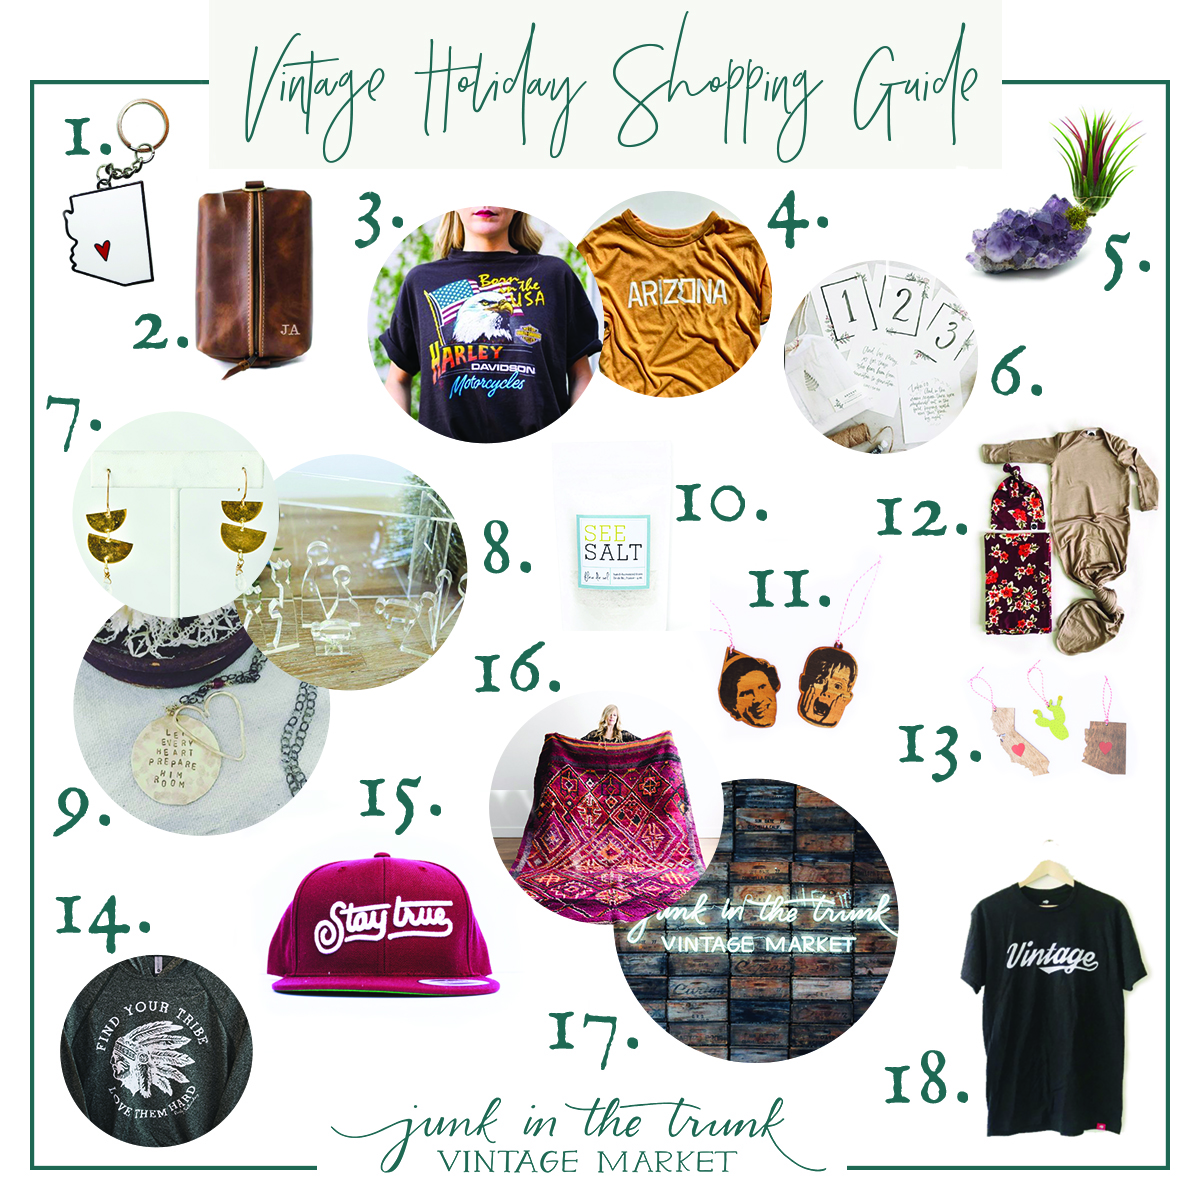 Vintage Holiday Gift Guide 2018 - Junk In The Trunk Vintage Market